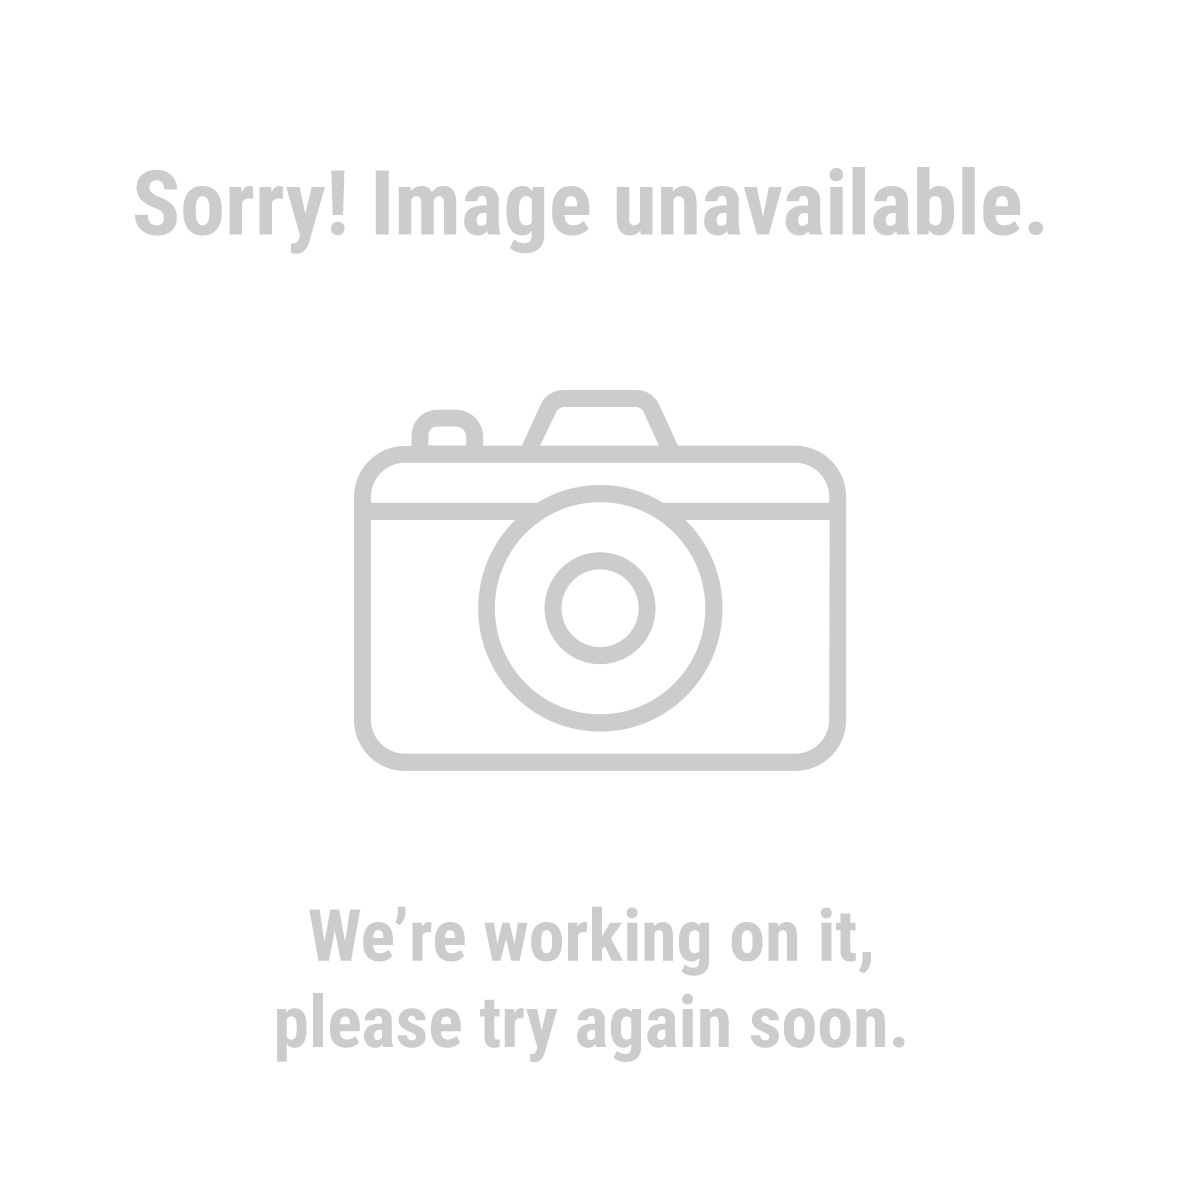 Cen-Tech® 95069 70 Lb/32 Kg Digital Postal Scale